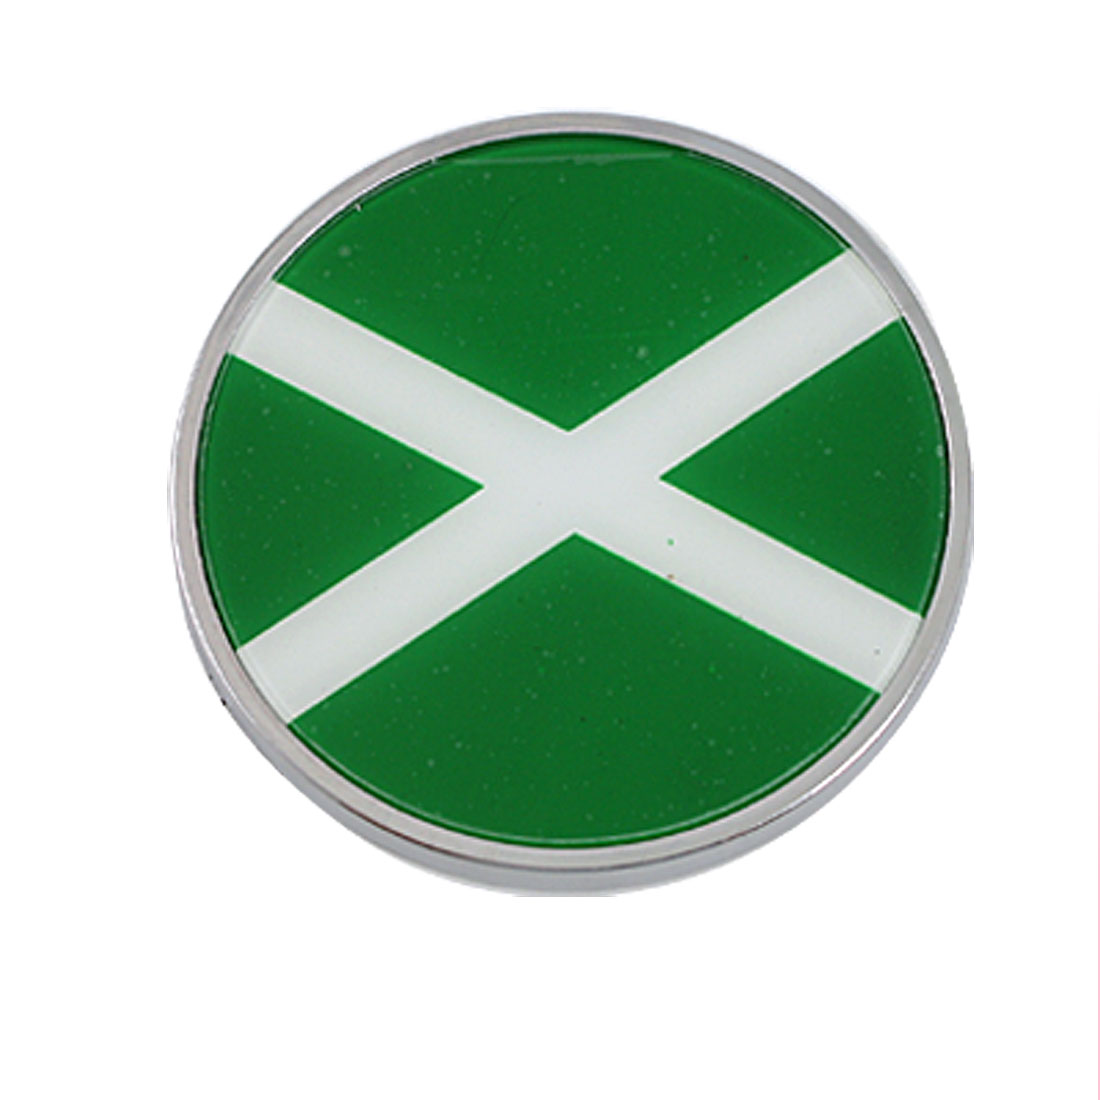 White Cross Wrong Sign Green Silver Tone Round Emblem Badge for Car